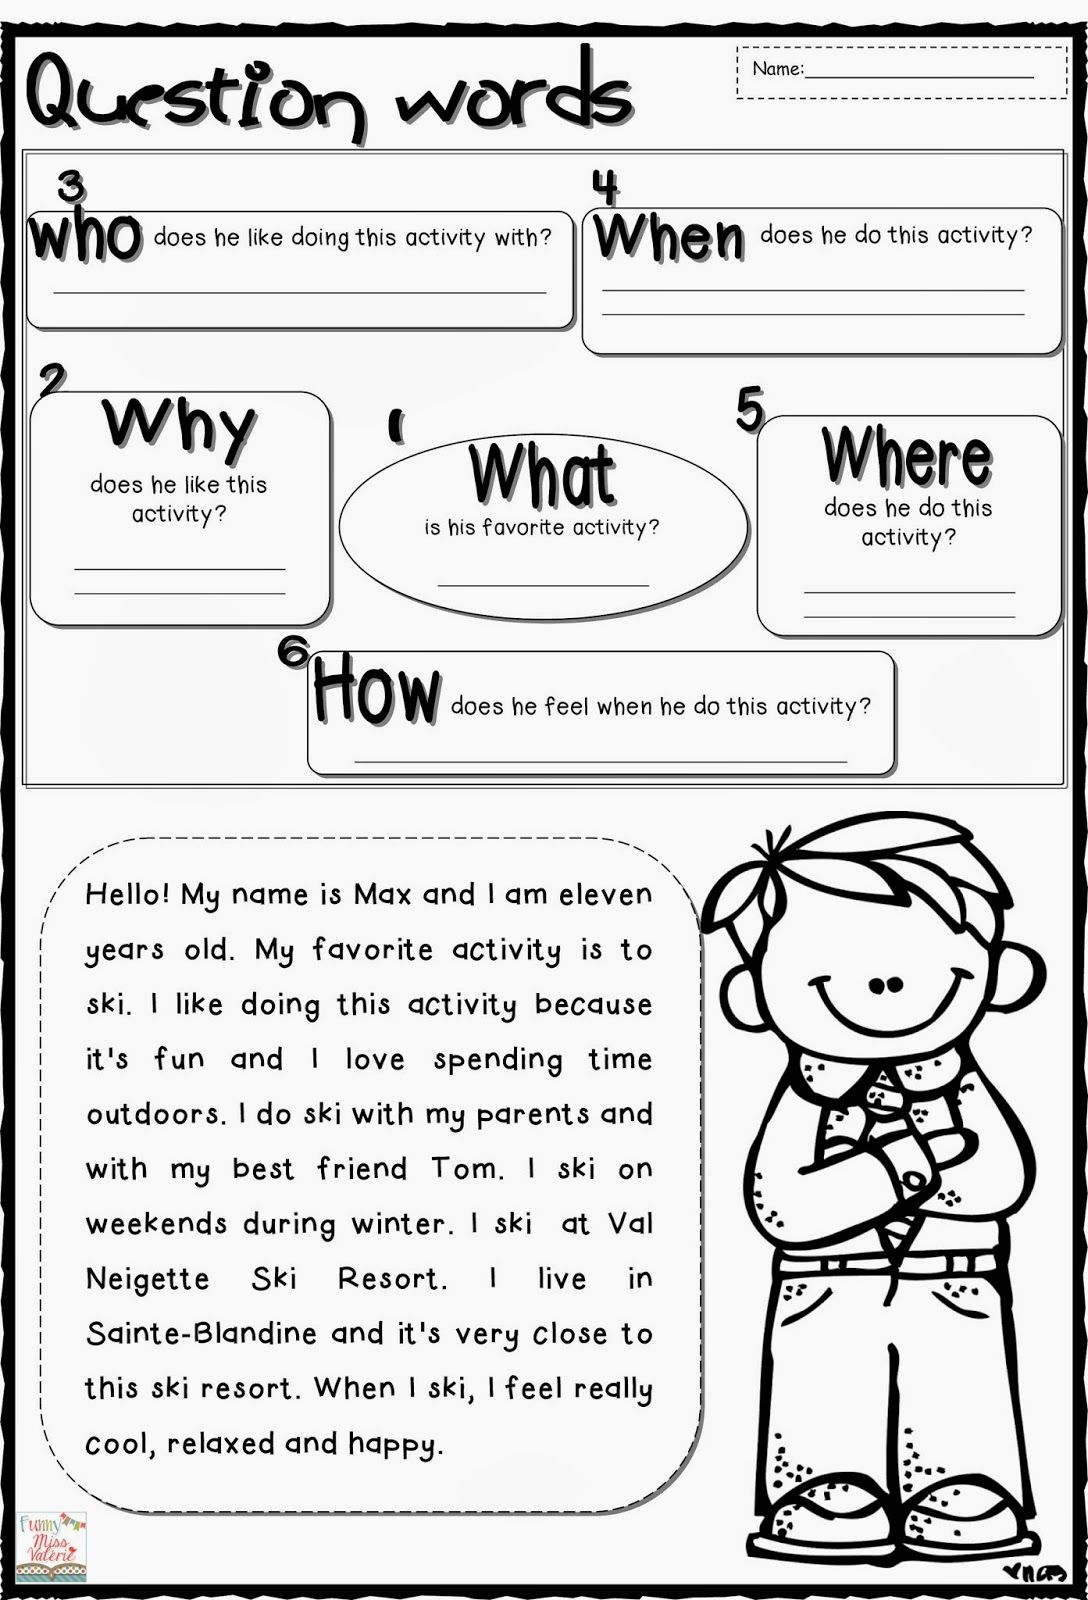 medium resolution of Question Words   Reading comprehension worksheets